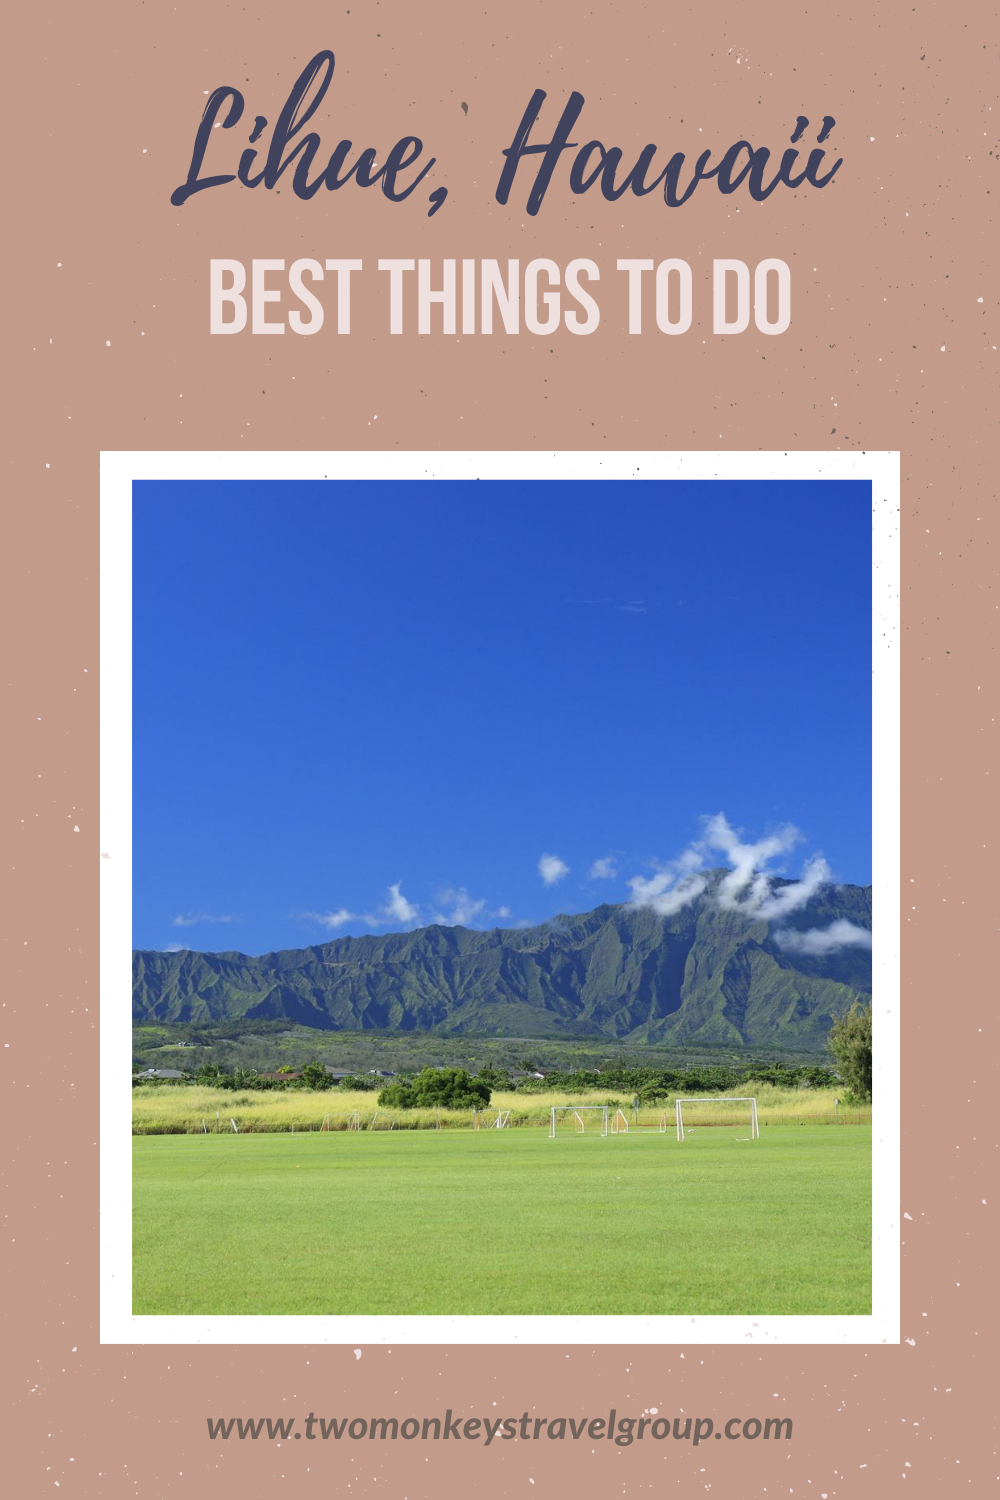 15 Things to do in Lihue, Hawaii [With Suggested 3 Day Itinerary]